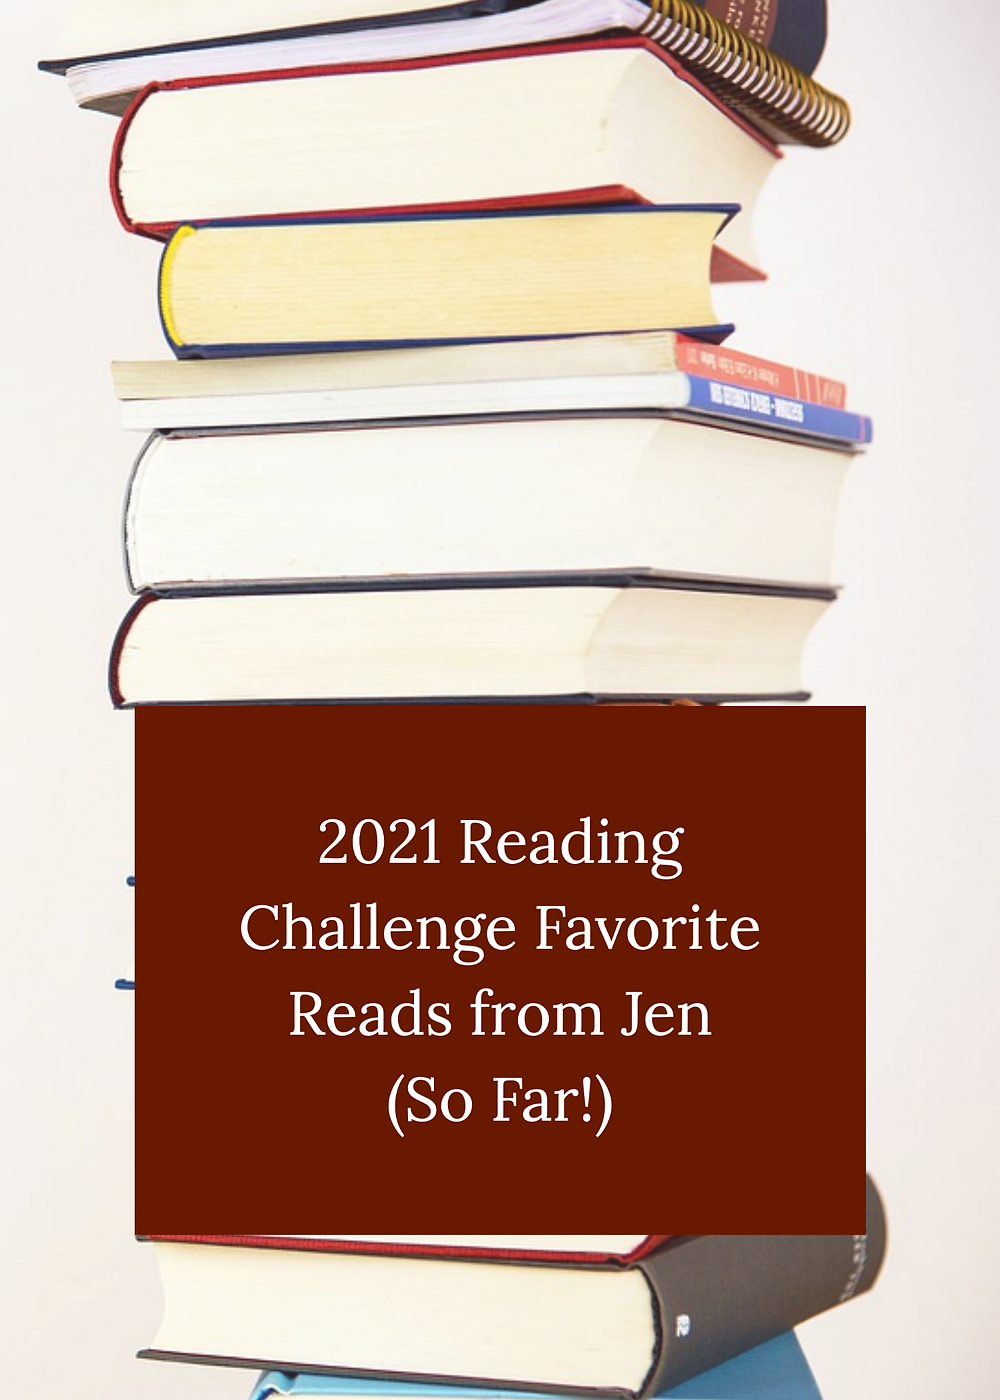 Stack of books with text 2021 Reading Challenge Favorite Reads from Jen (So Far!)